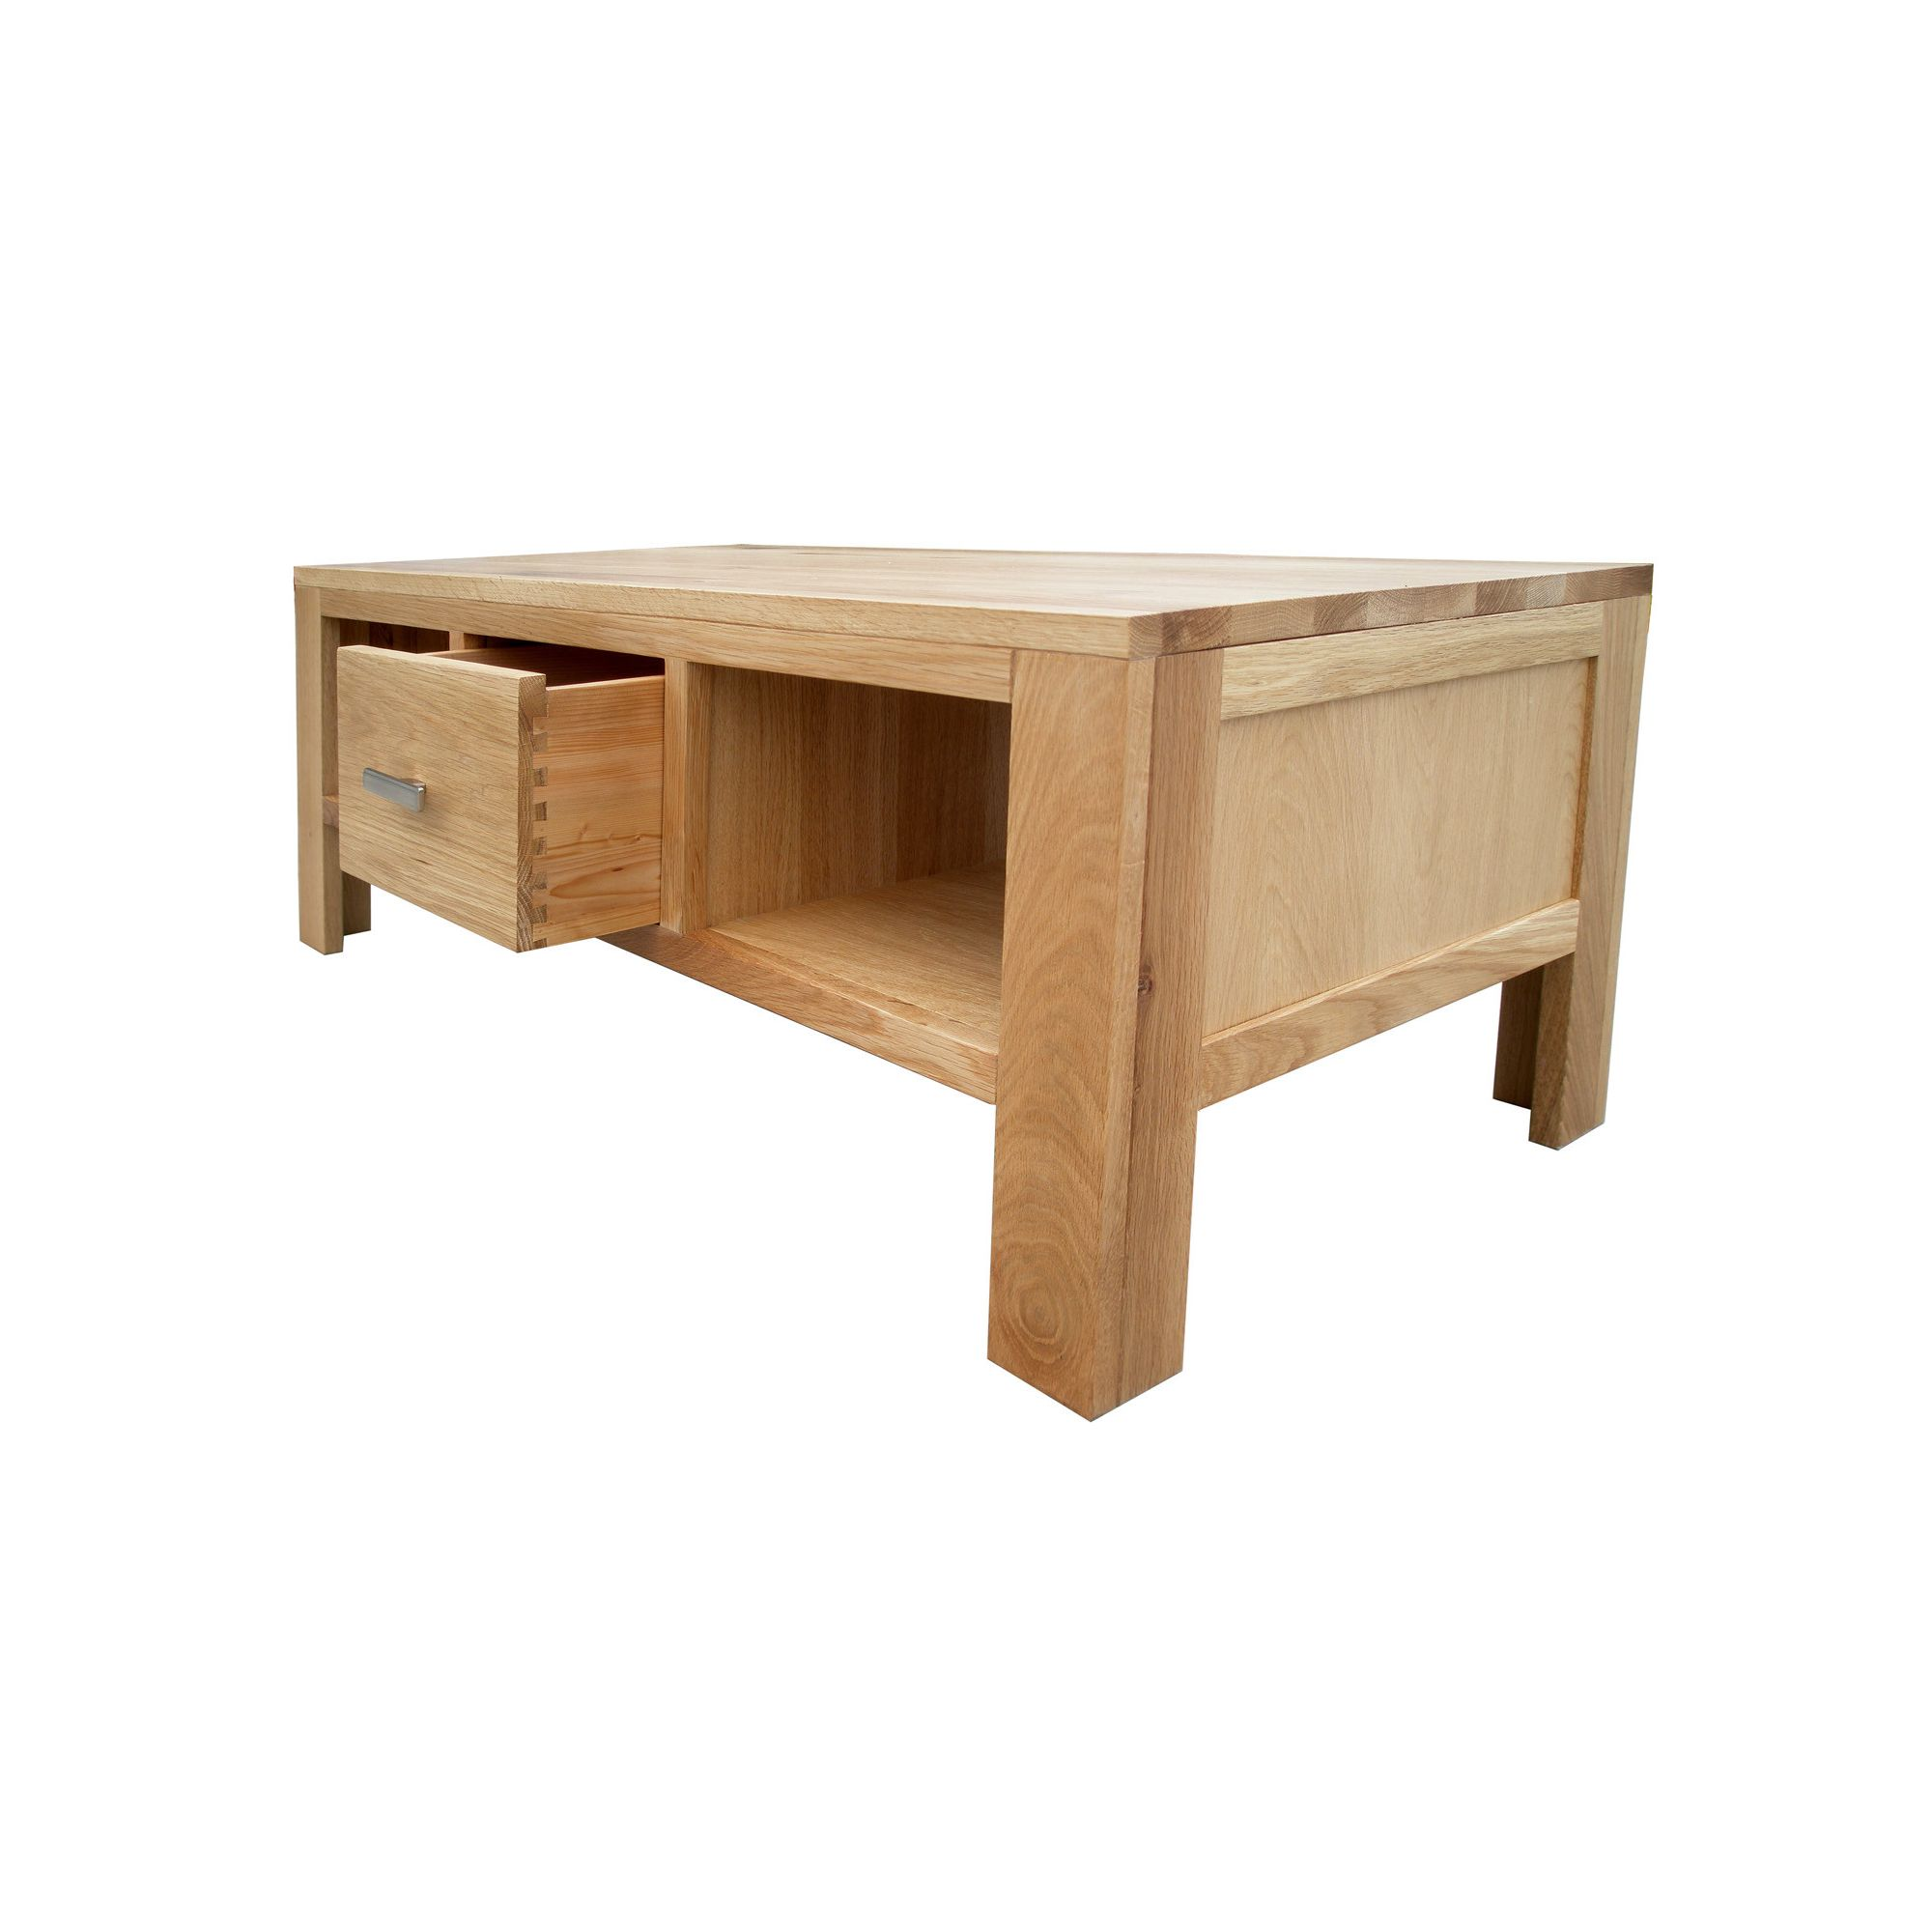 Home Zone Furniture Churchill Oak 2010 Large One Drawer Coffee Table in Natural Oak at Tesco Direct